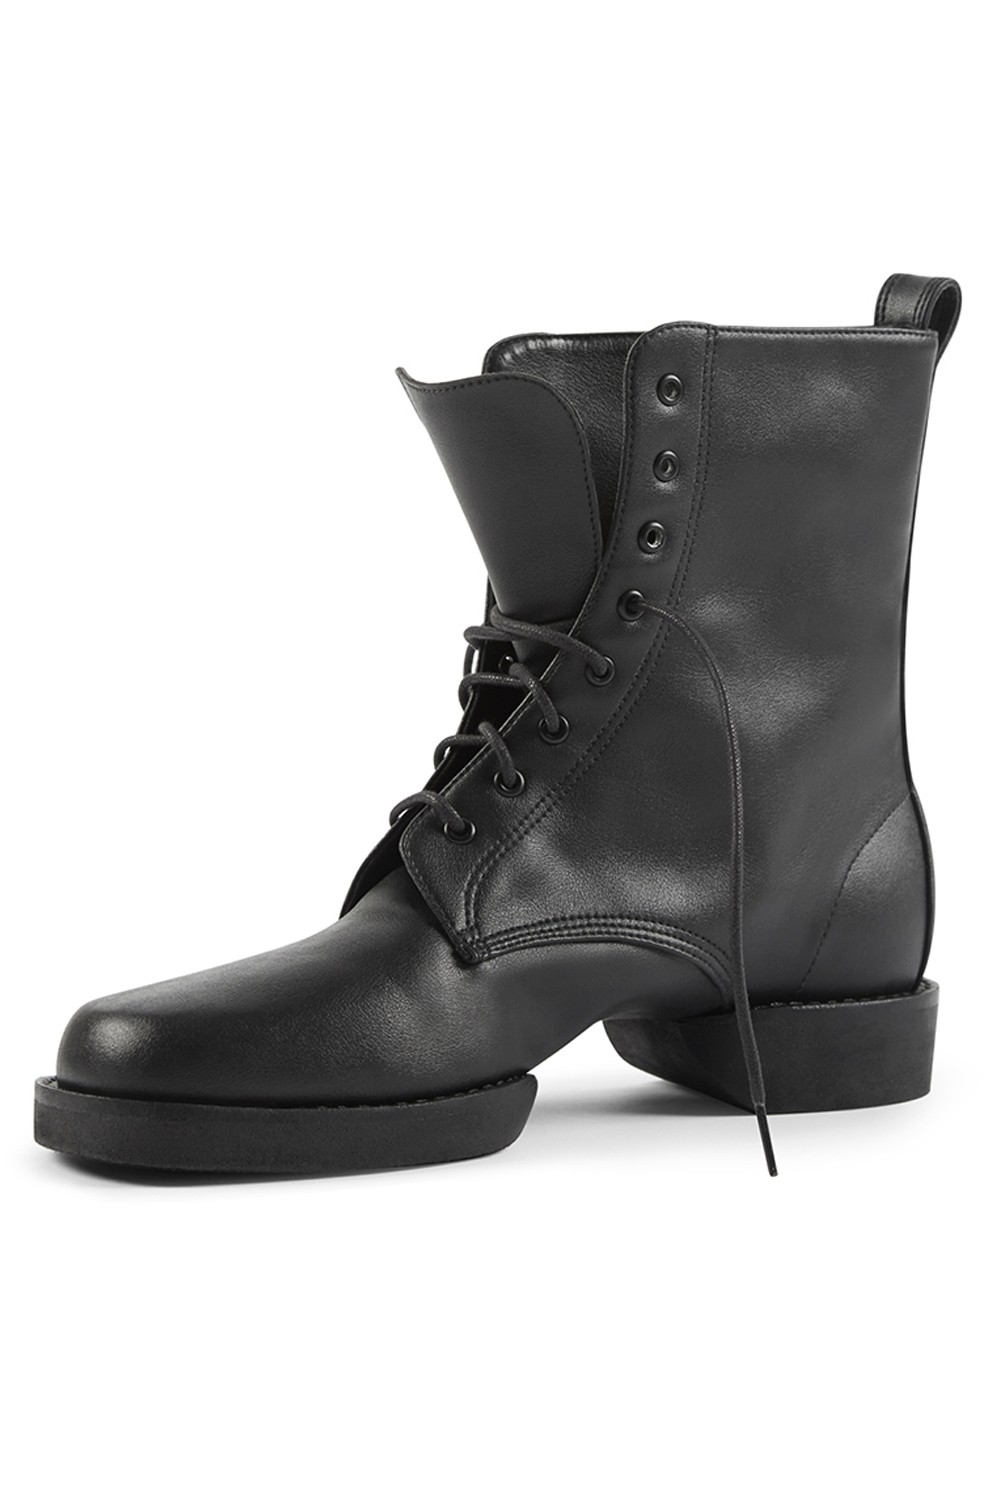 Militaire Split Sole Dance Shoes